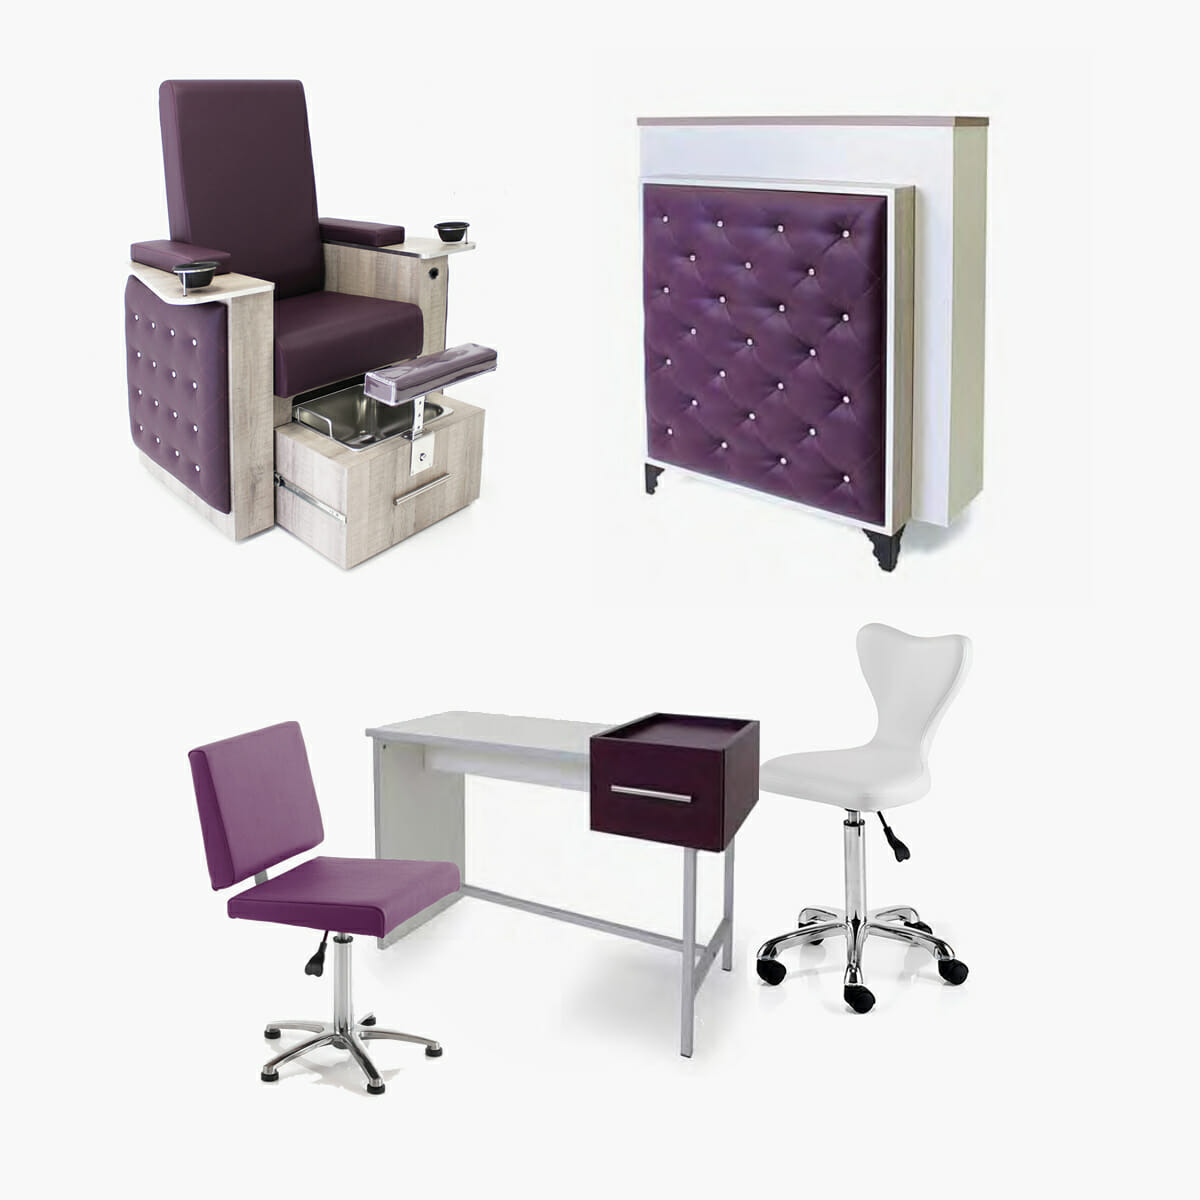 Sofas Salon Rem Bliss Beauty Furniture Package Direct Salon Furniture